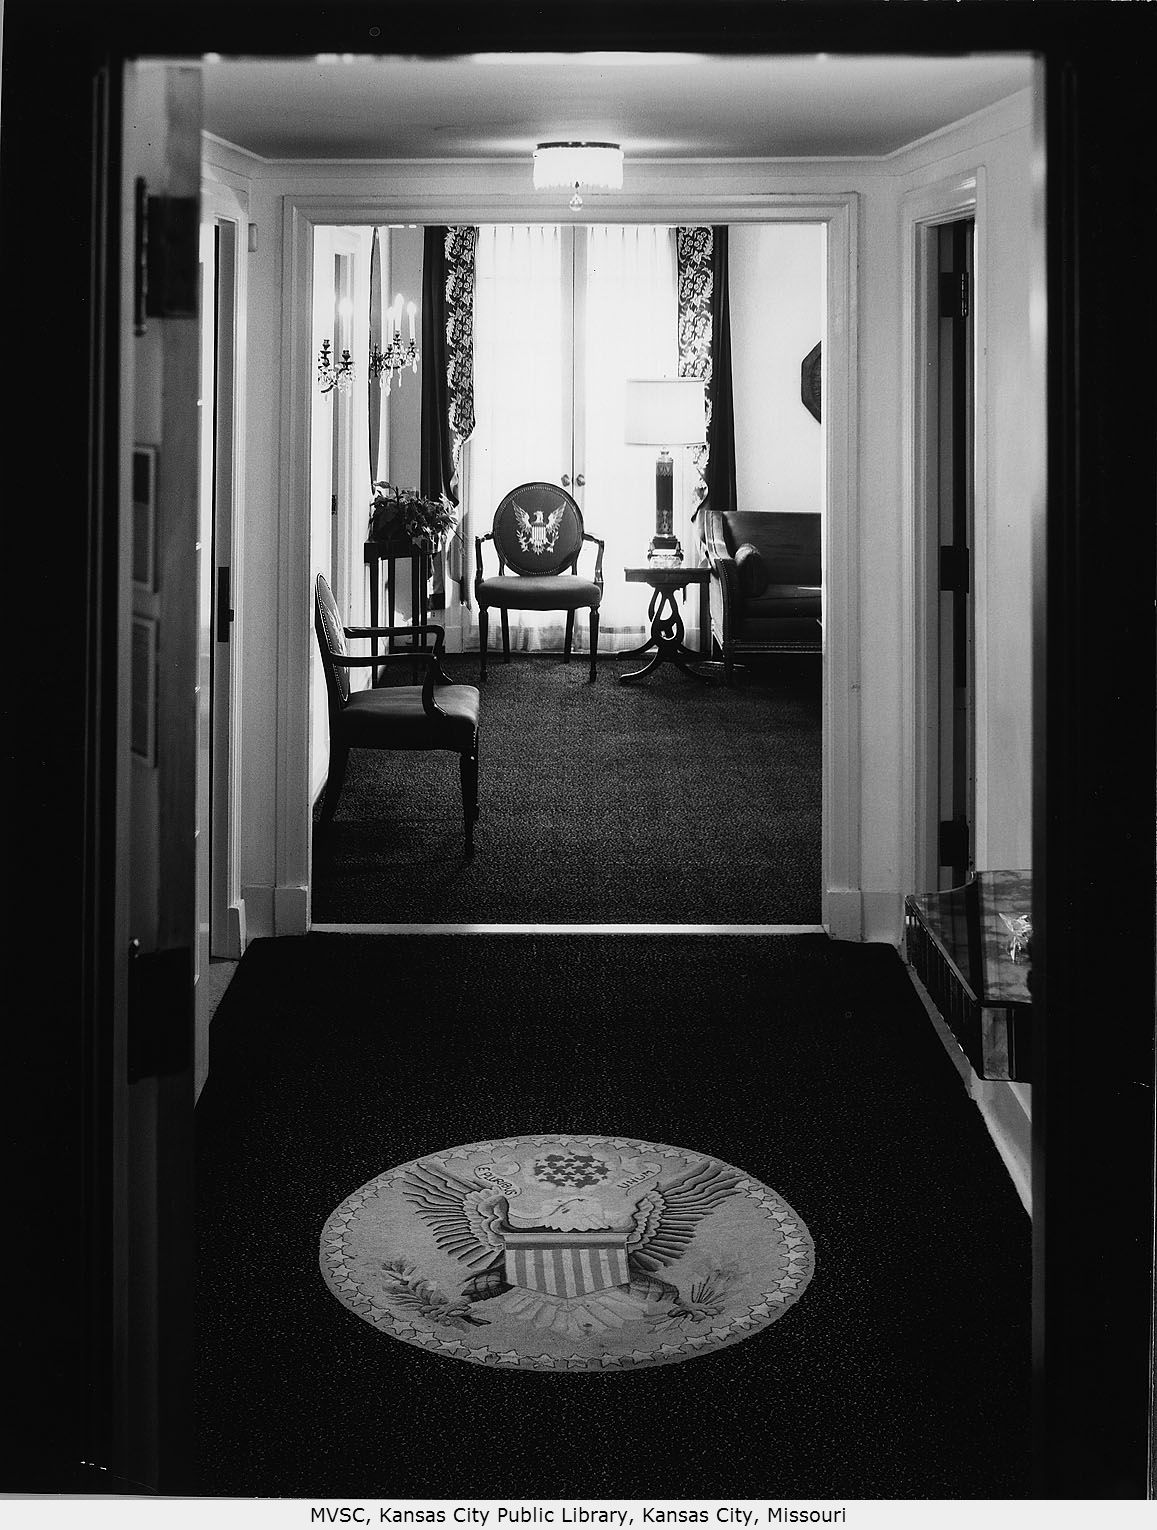 The Presidential Suite hosted a number of presidents, most notably Harry S. Truman. Image courtesy of the Missouri Valley Special Collections.